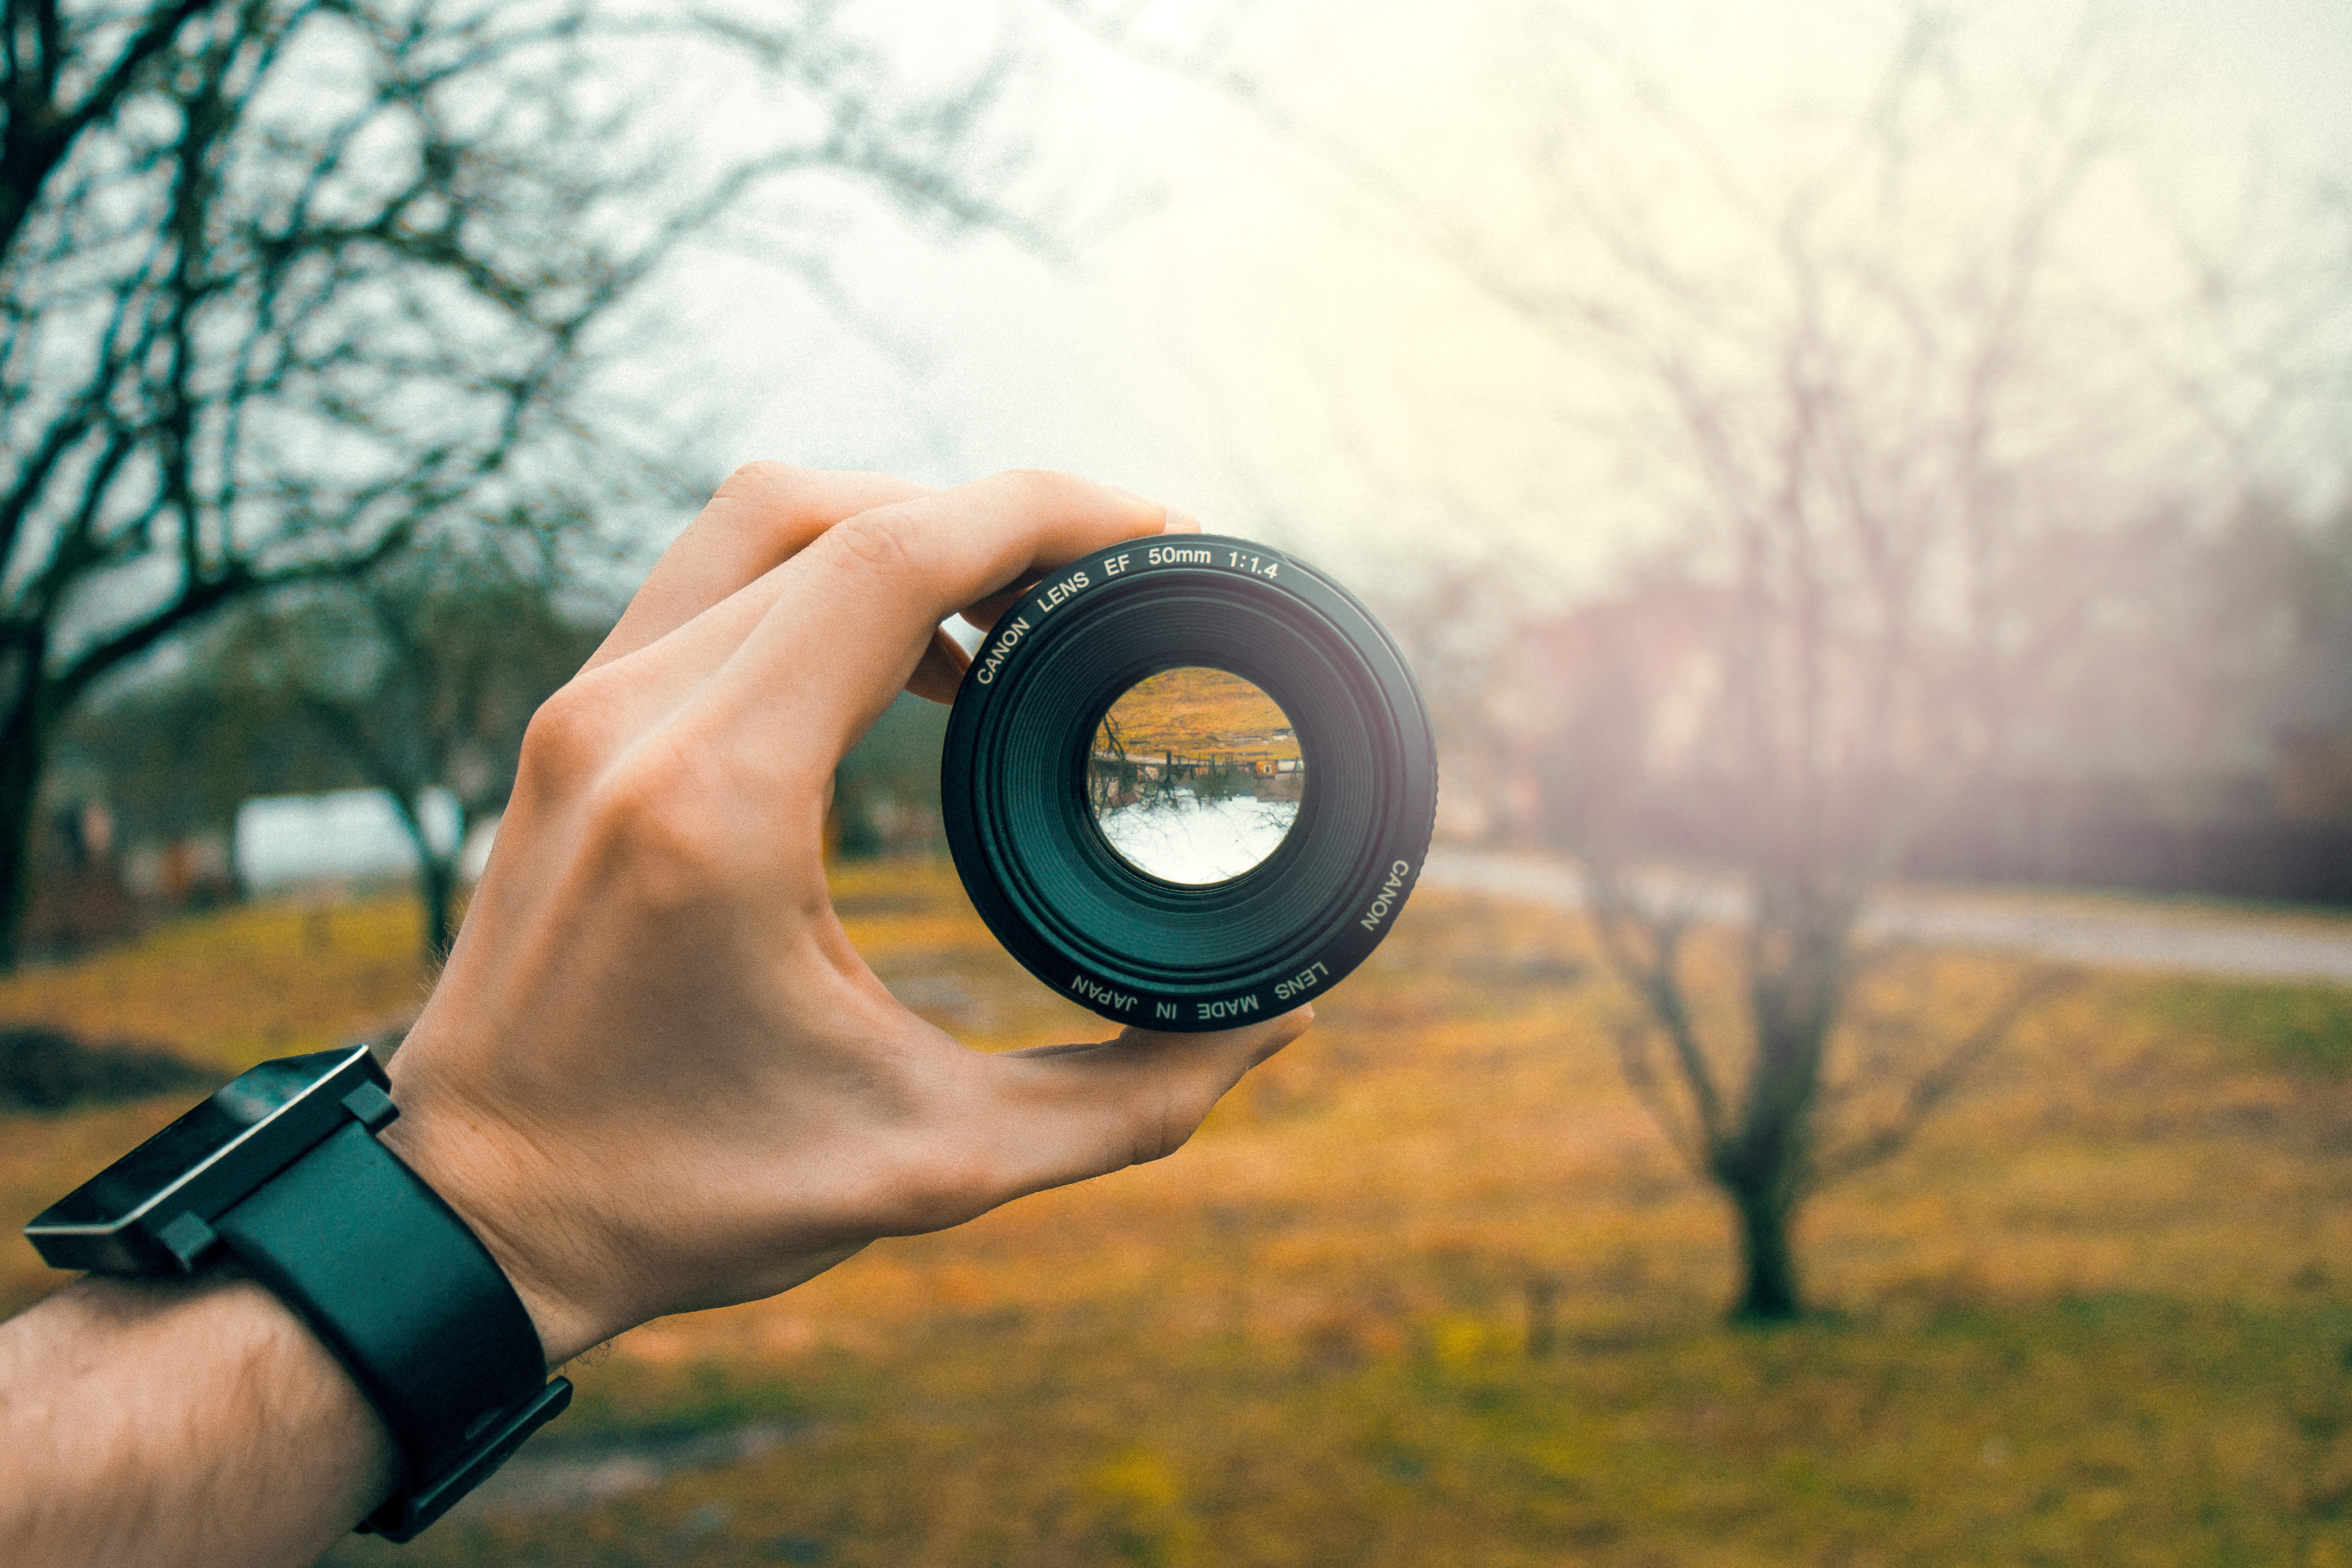 a camera lens focuses on something in the distance